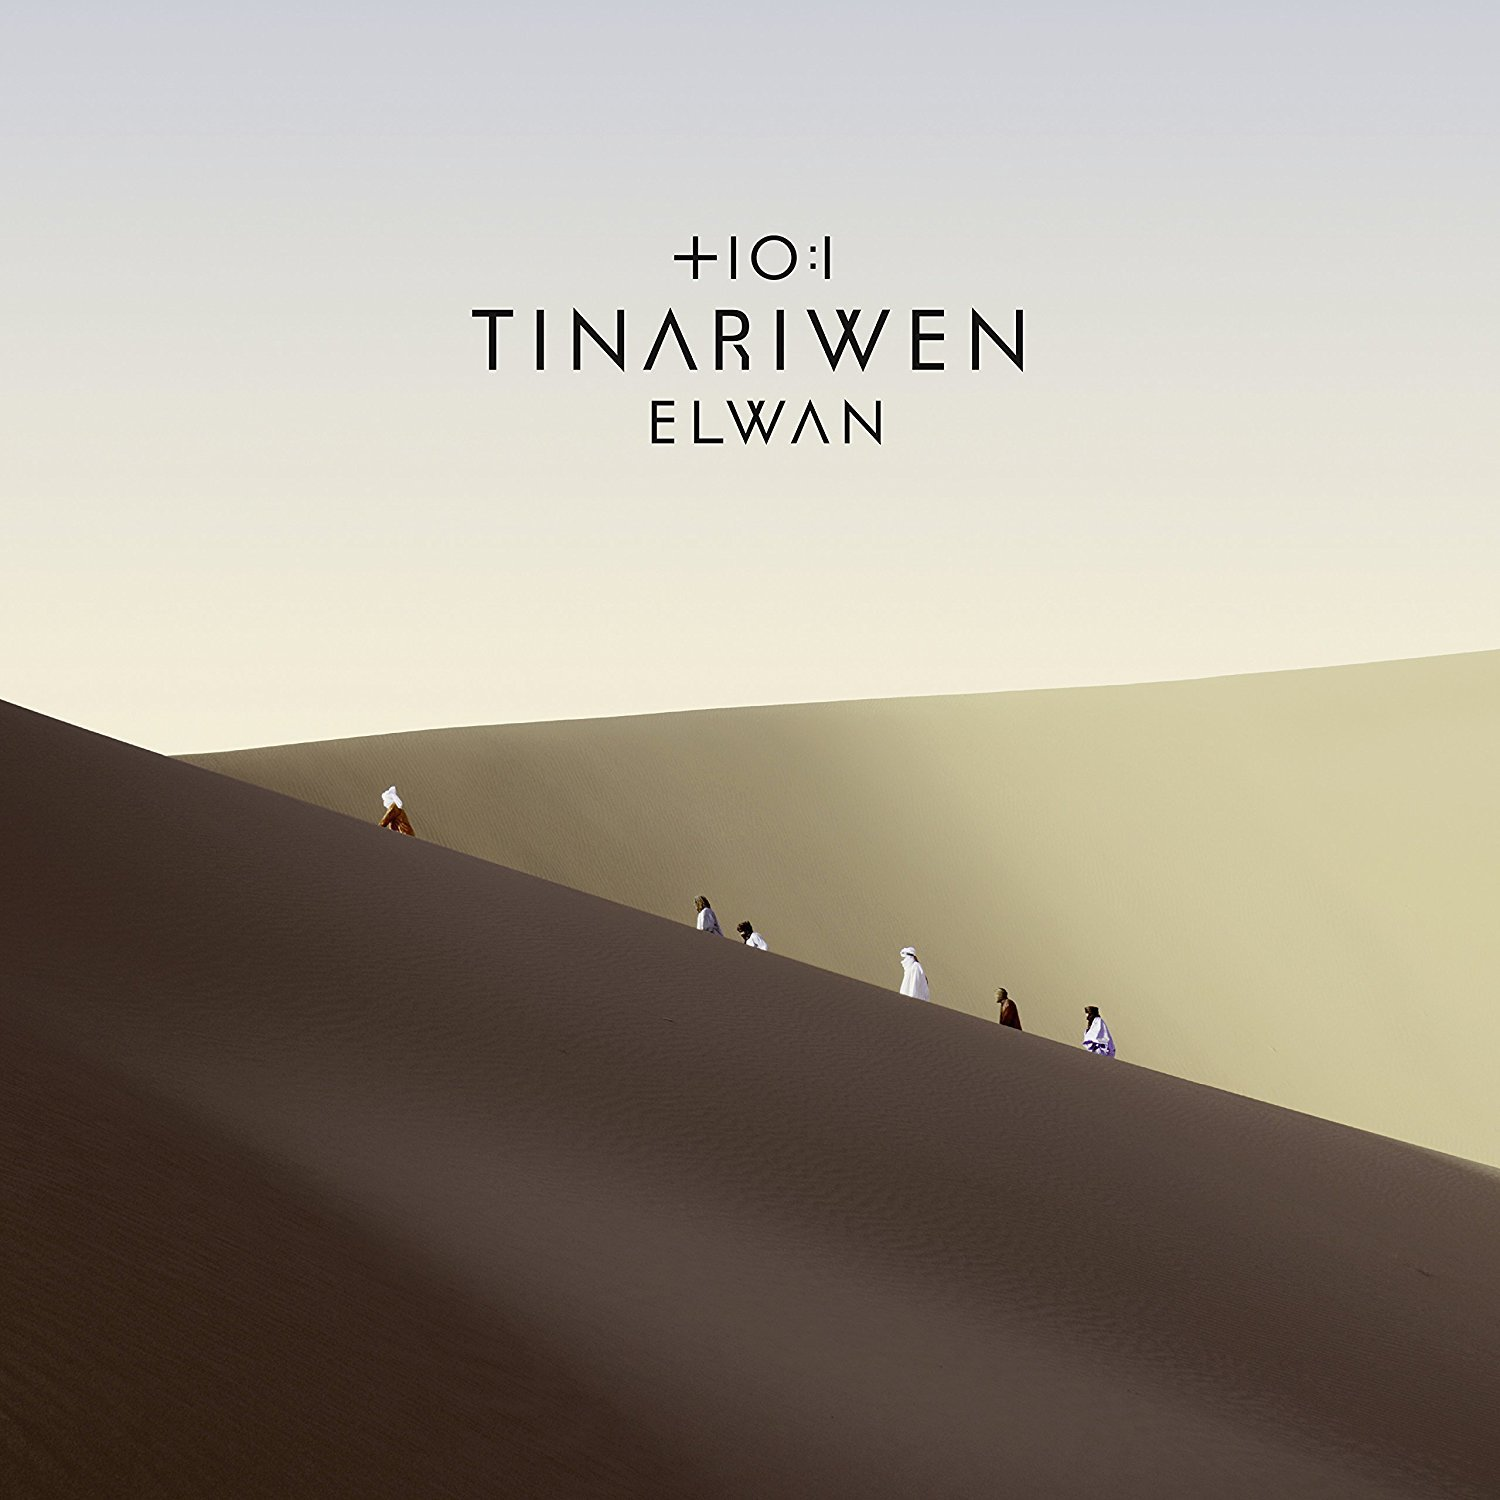 world 02 17 tinariwen